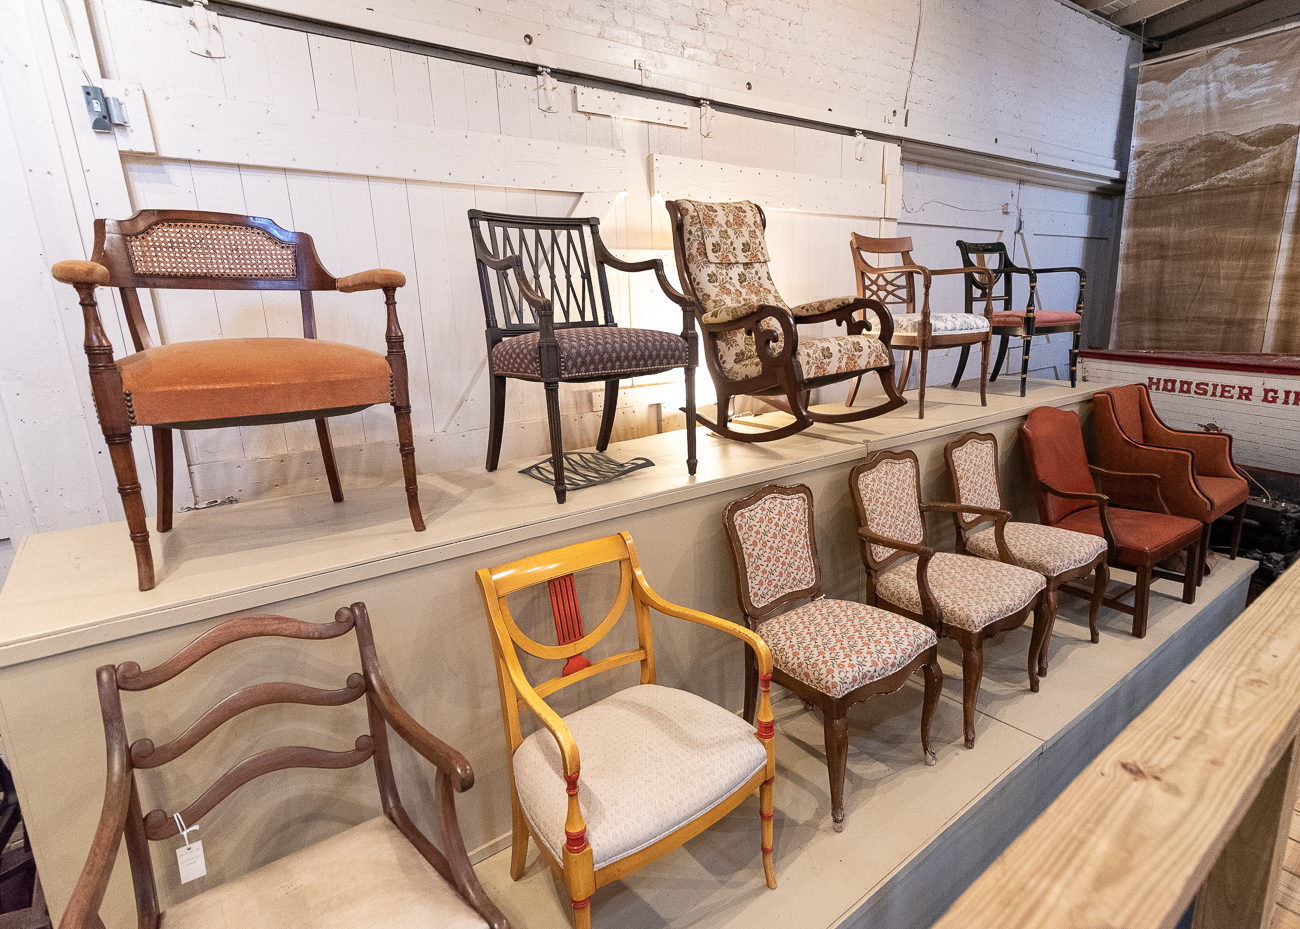 Whitlock's business, the Whitlock Furniture Company, made beautiful furniture that was shipped all over the United States. Several of the chairs on display in the Whitlock Gallery were purchased from residents as far south as Florida. / Image: Phil Armstrong, Cincinnati Refined // Published: 1.7.20